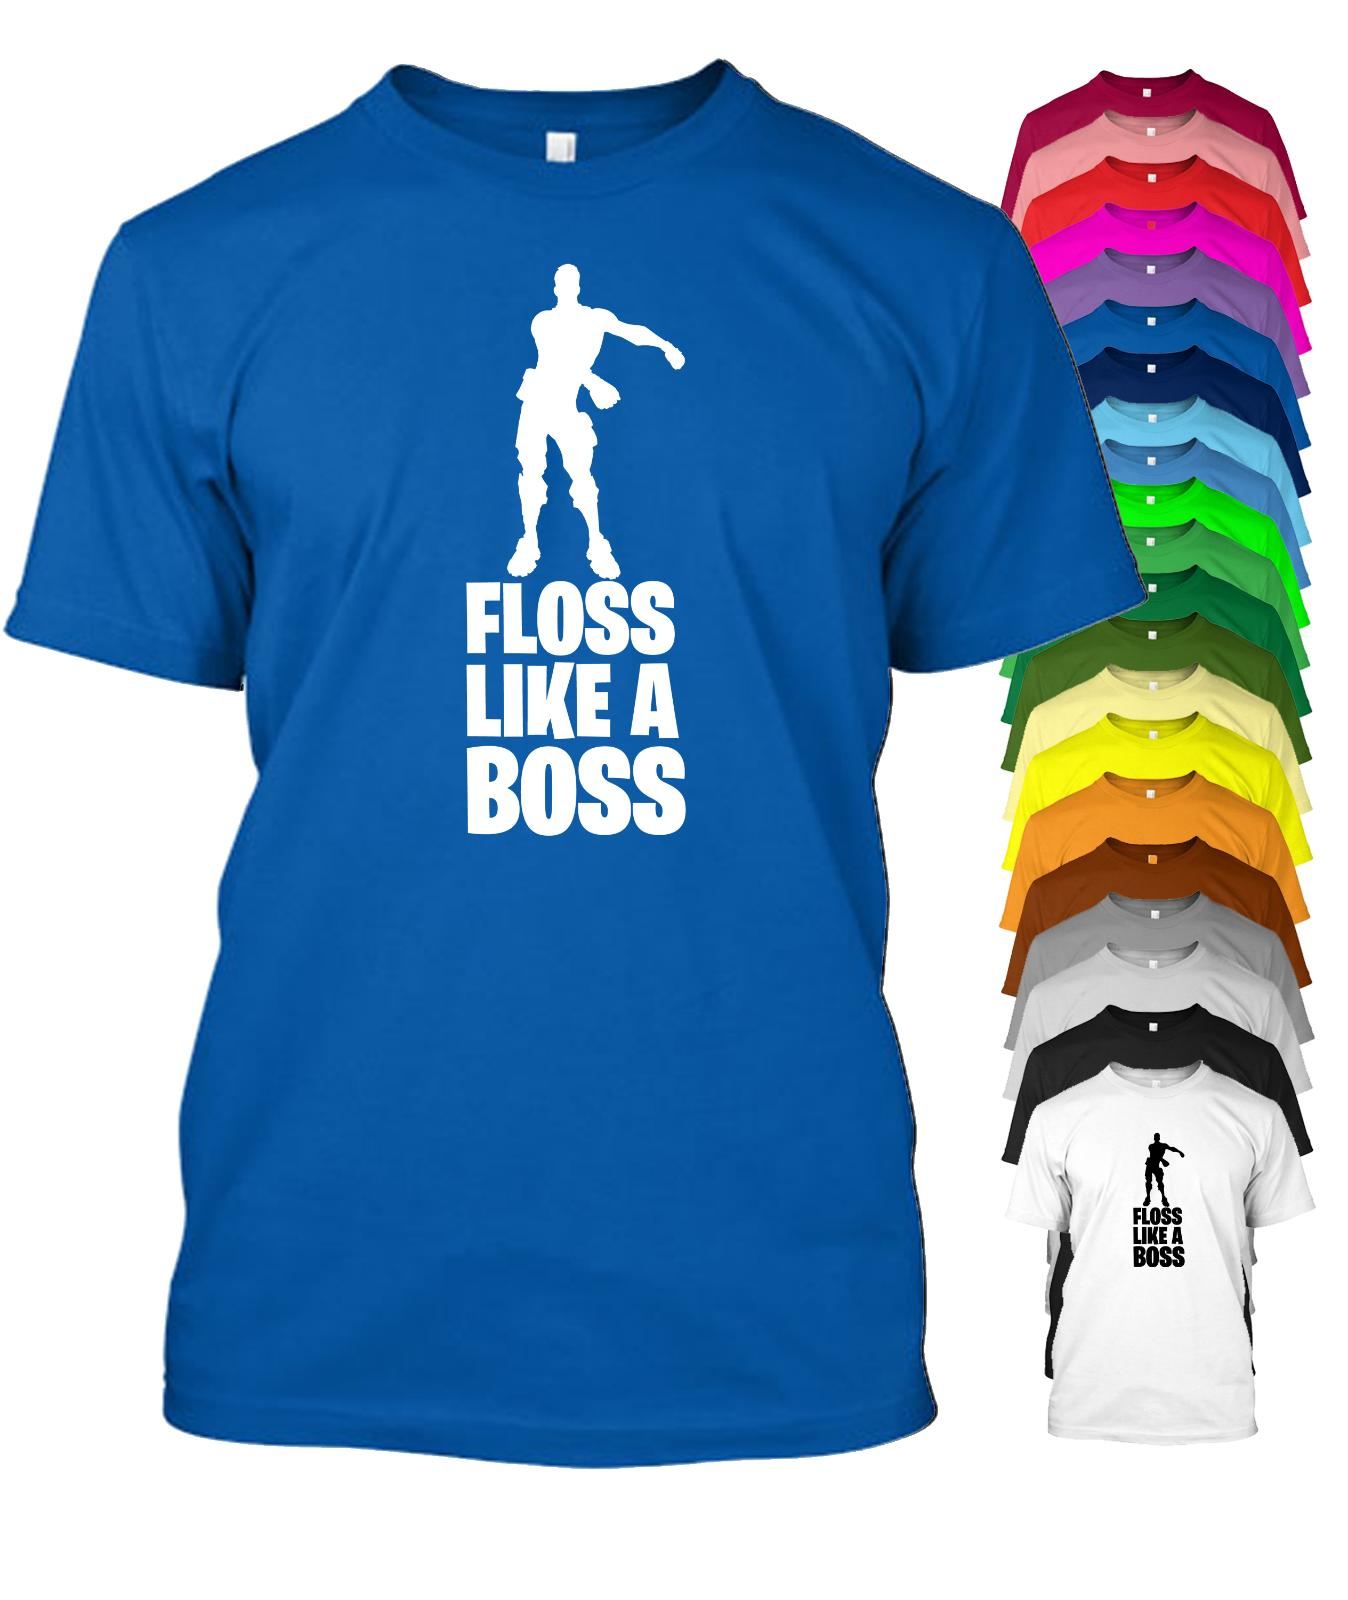 9570bf30e Floss Like A Boss Gaming T Shirt Men Women Child Sizes & 20 Colours Cool  Casual Pride T Shirt Men Unisex Tee Shirt Shop Online One T Shirt A Day  From ...